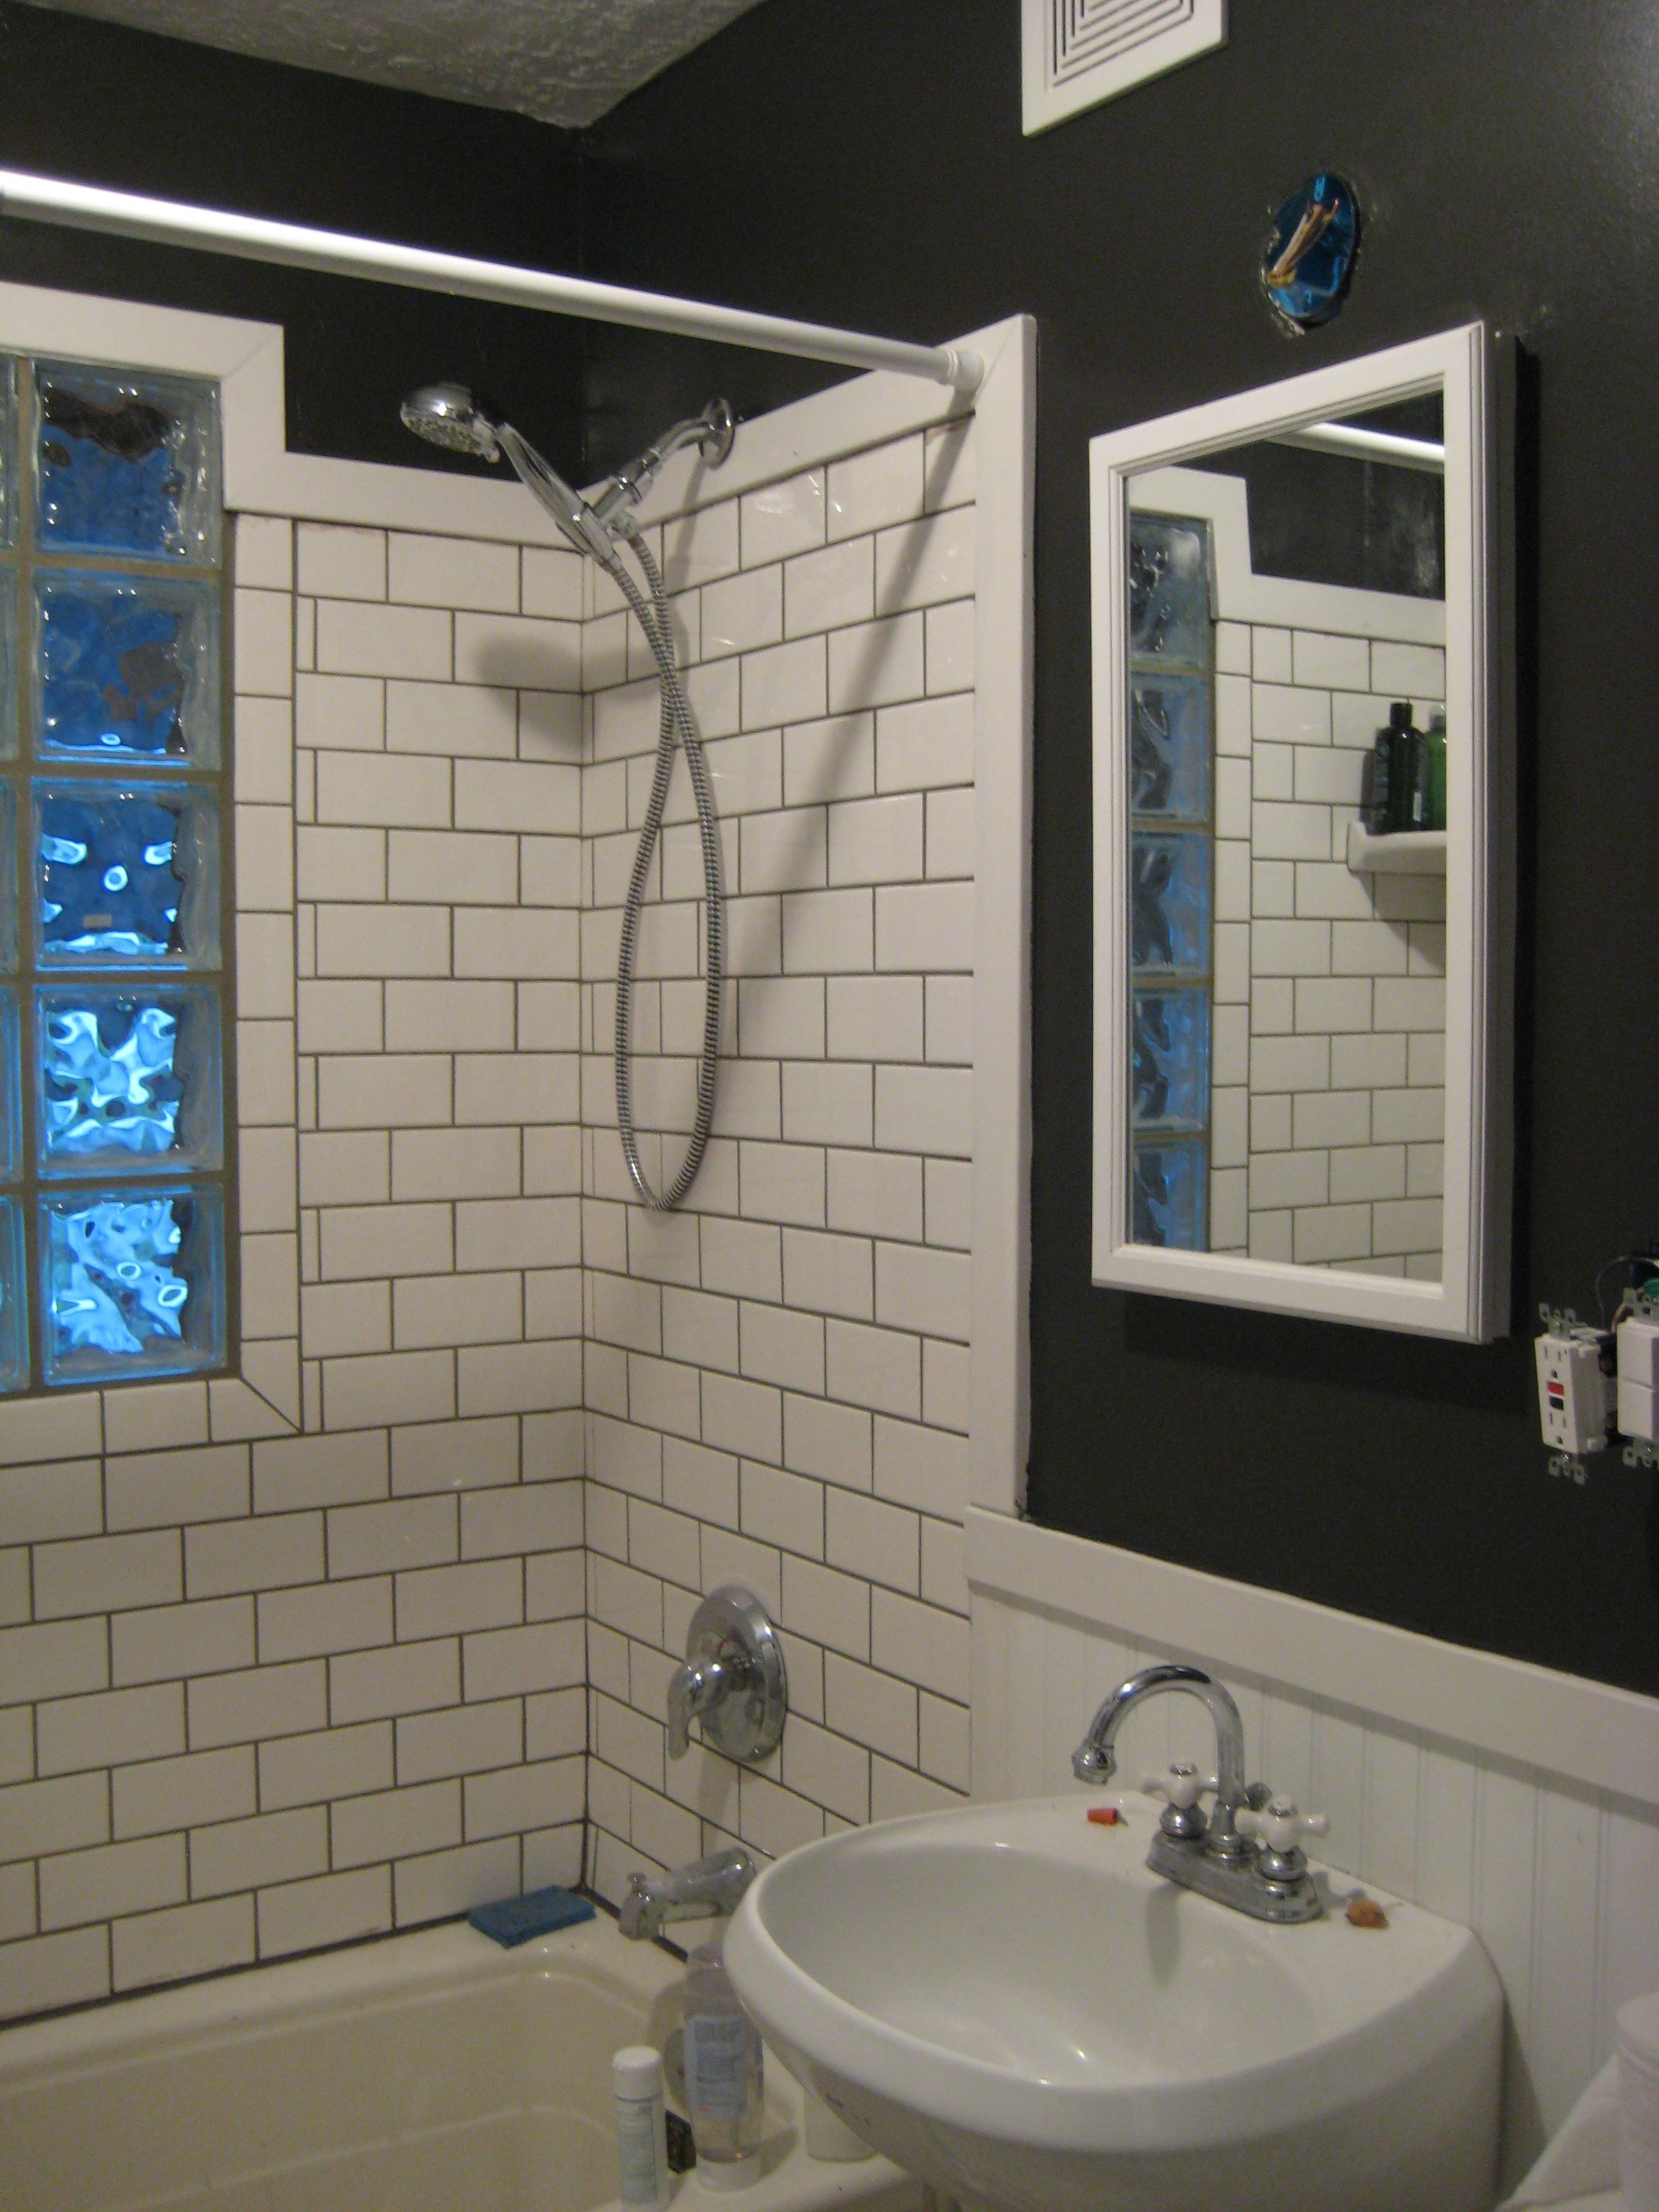 Beadboard On Walls, Subway Tile And Glass Block Window In Shower Part 69